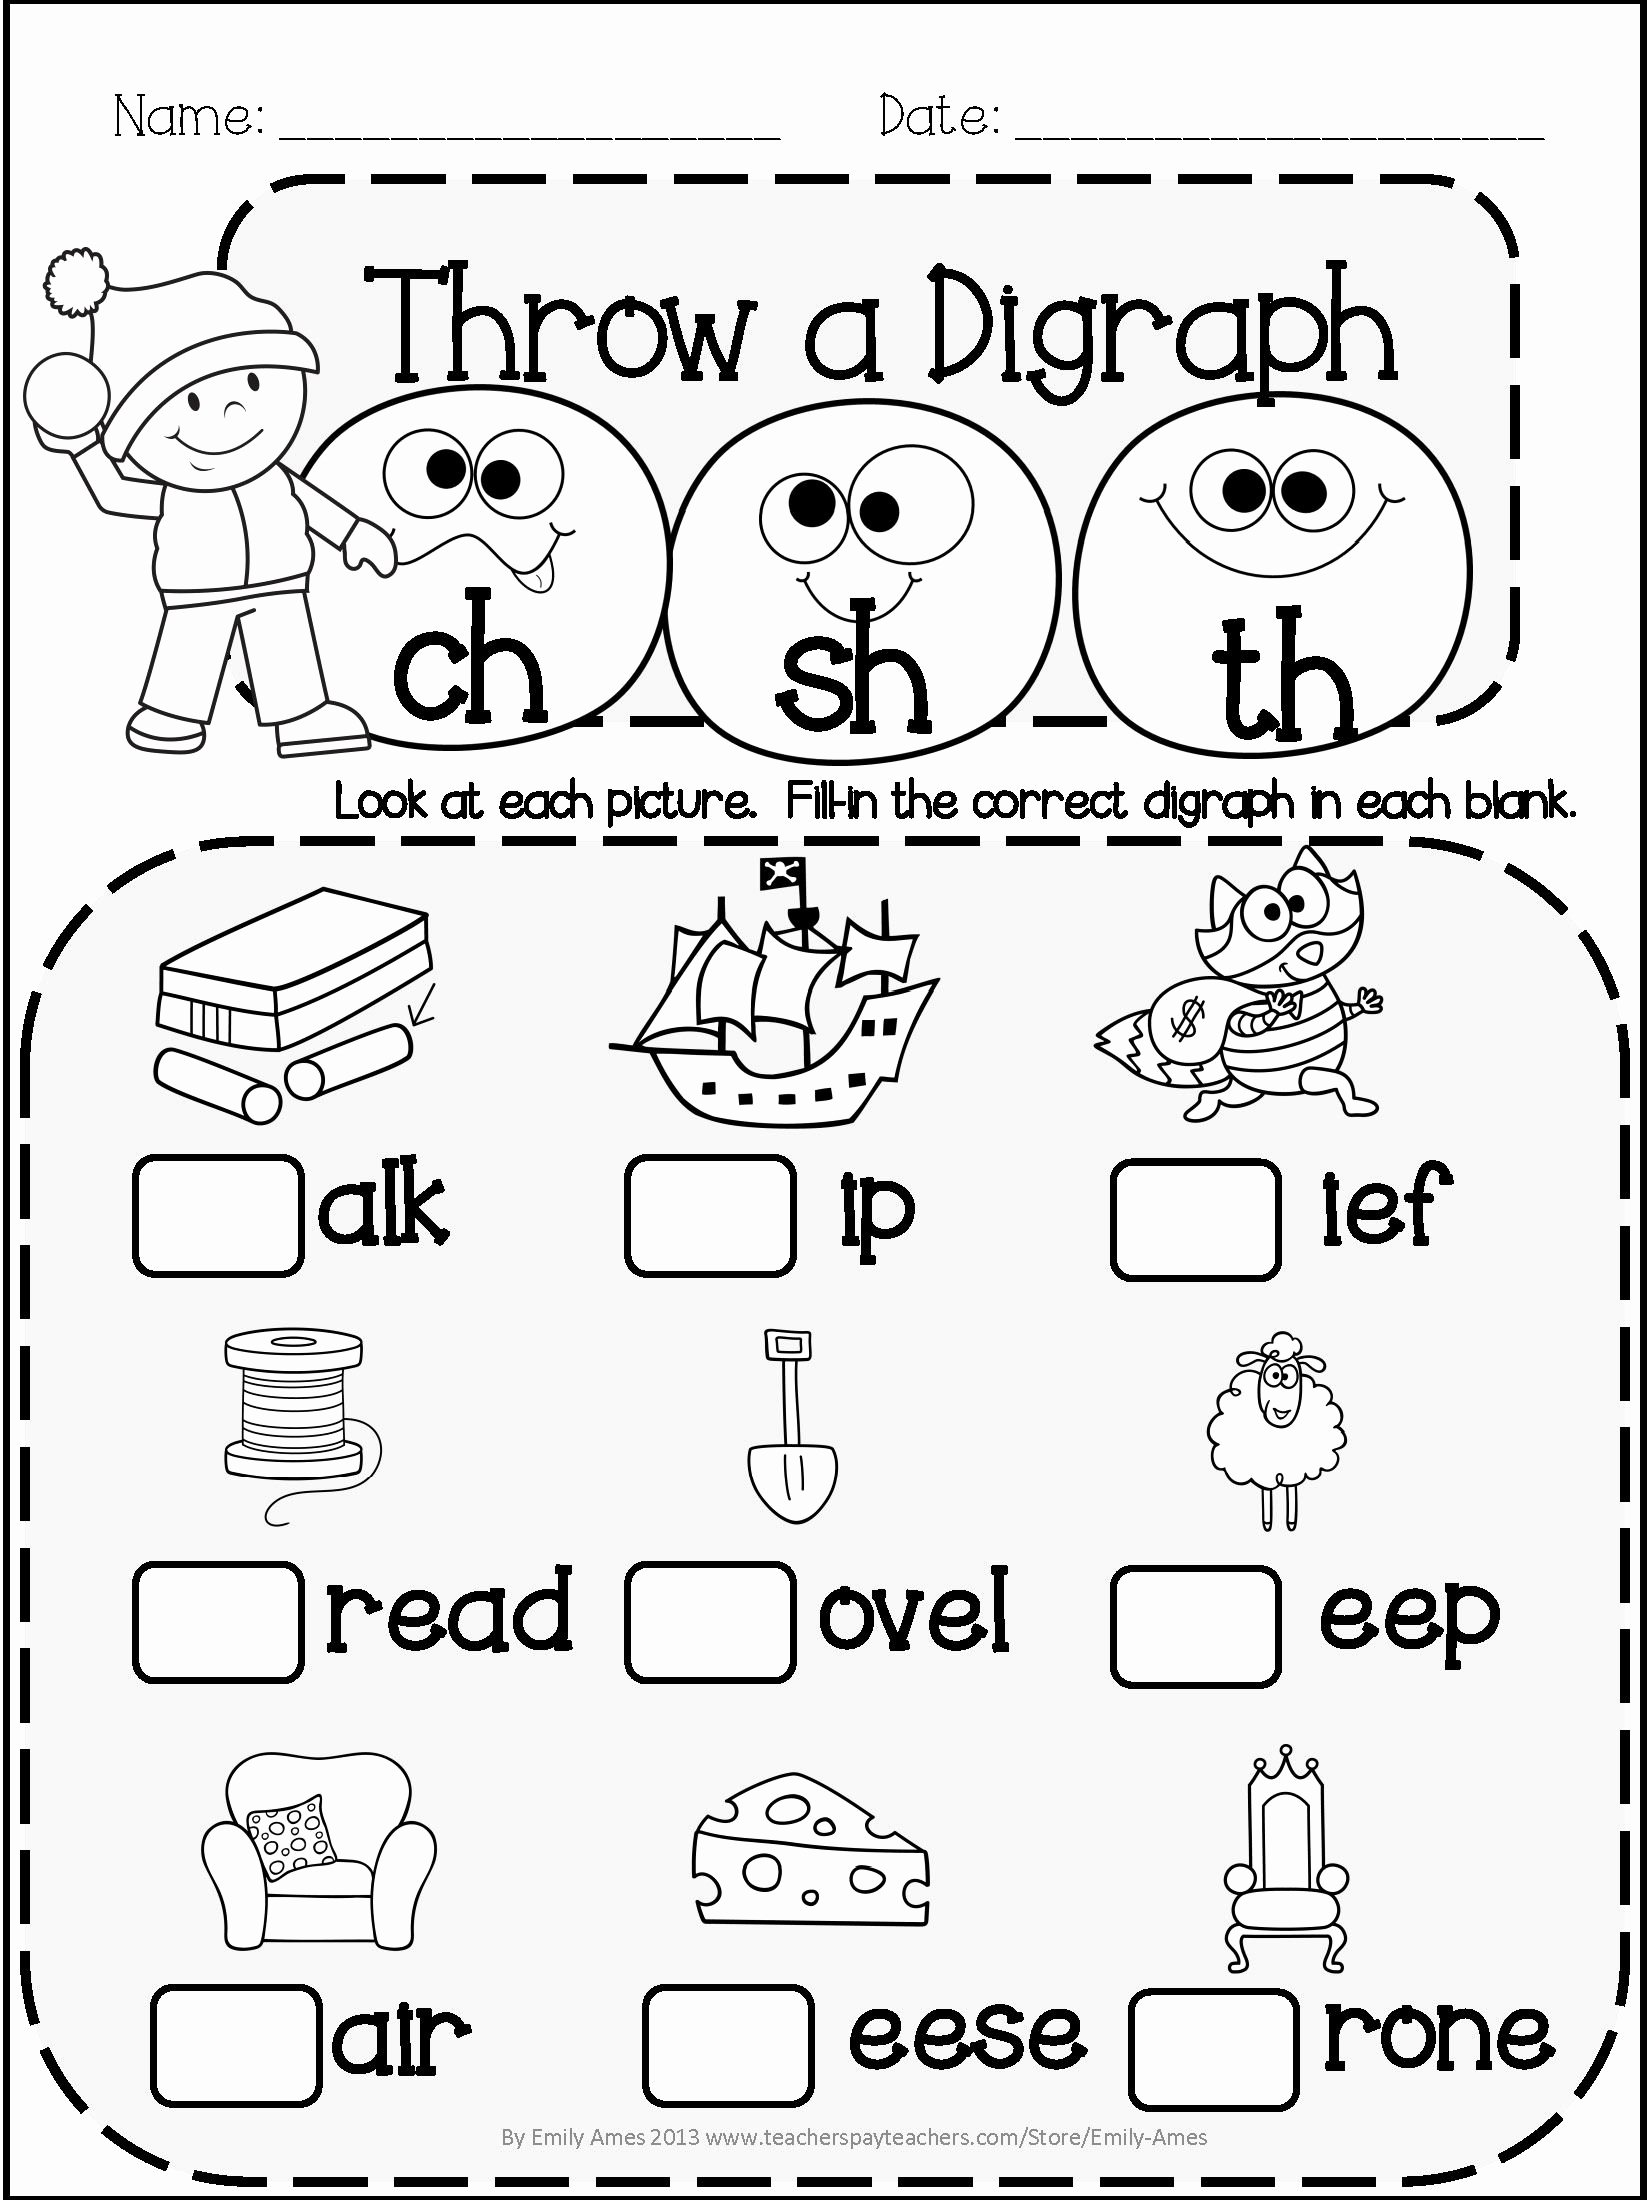 Ou Ow Worksheets 3rd Grade top Maggie Clement Maggiecle Ou Ow Phonics Worksheets